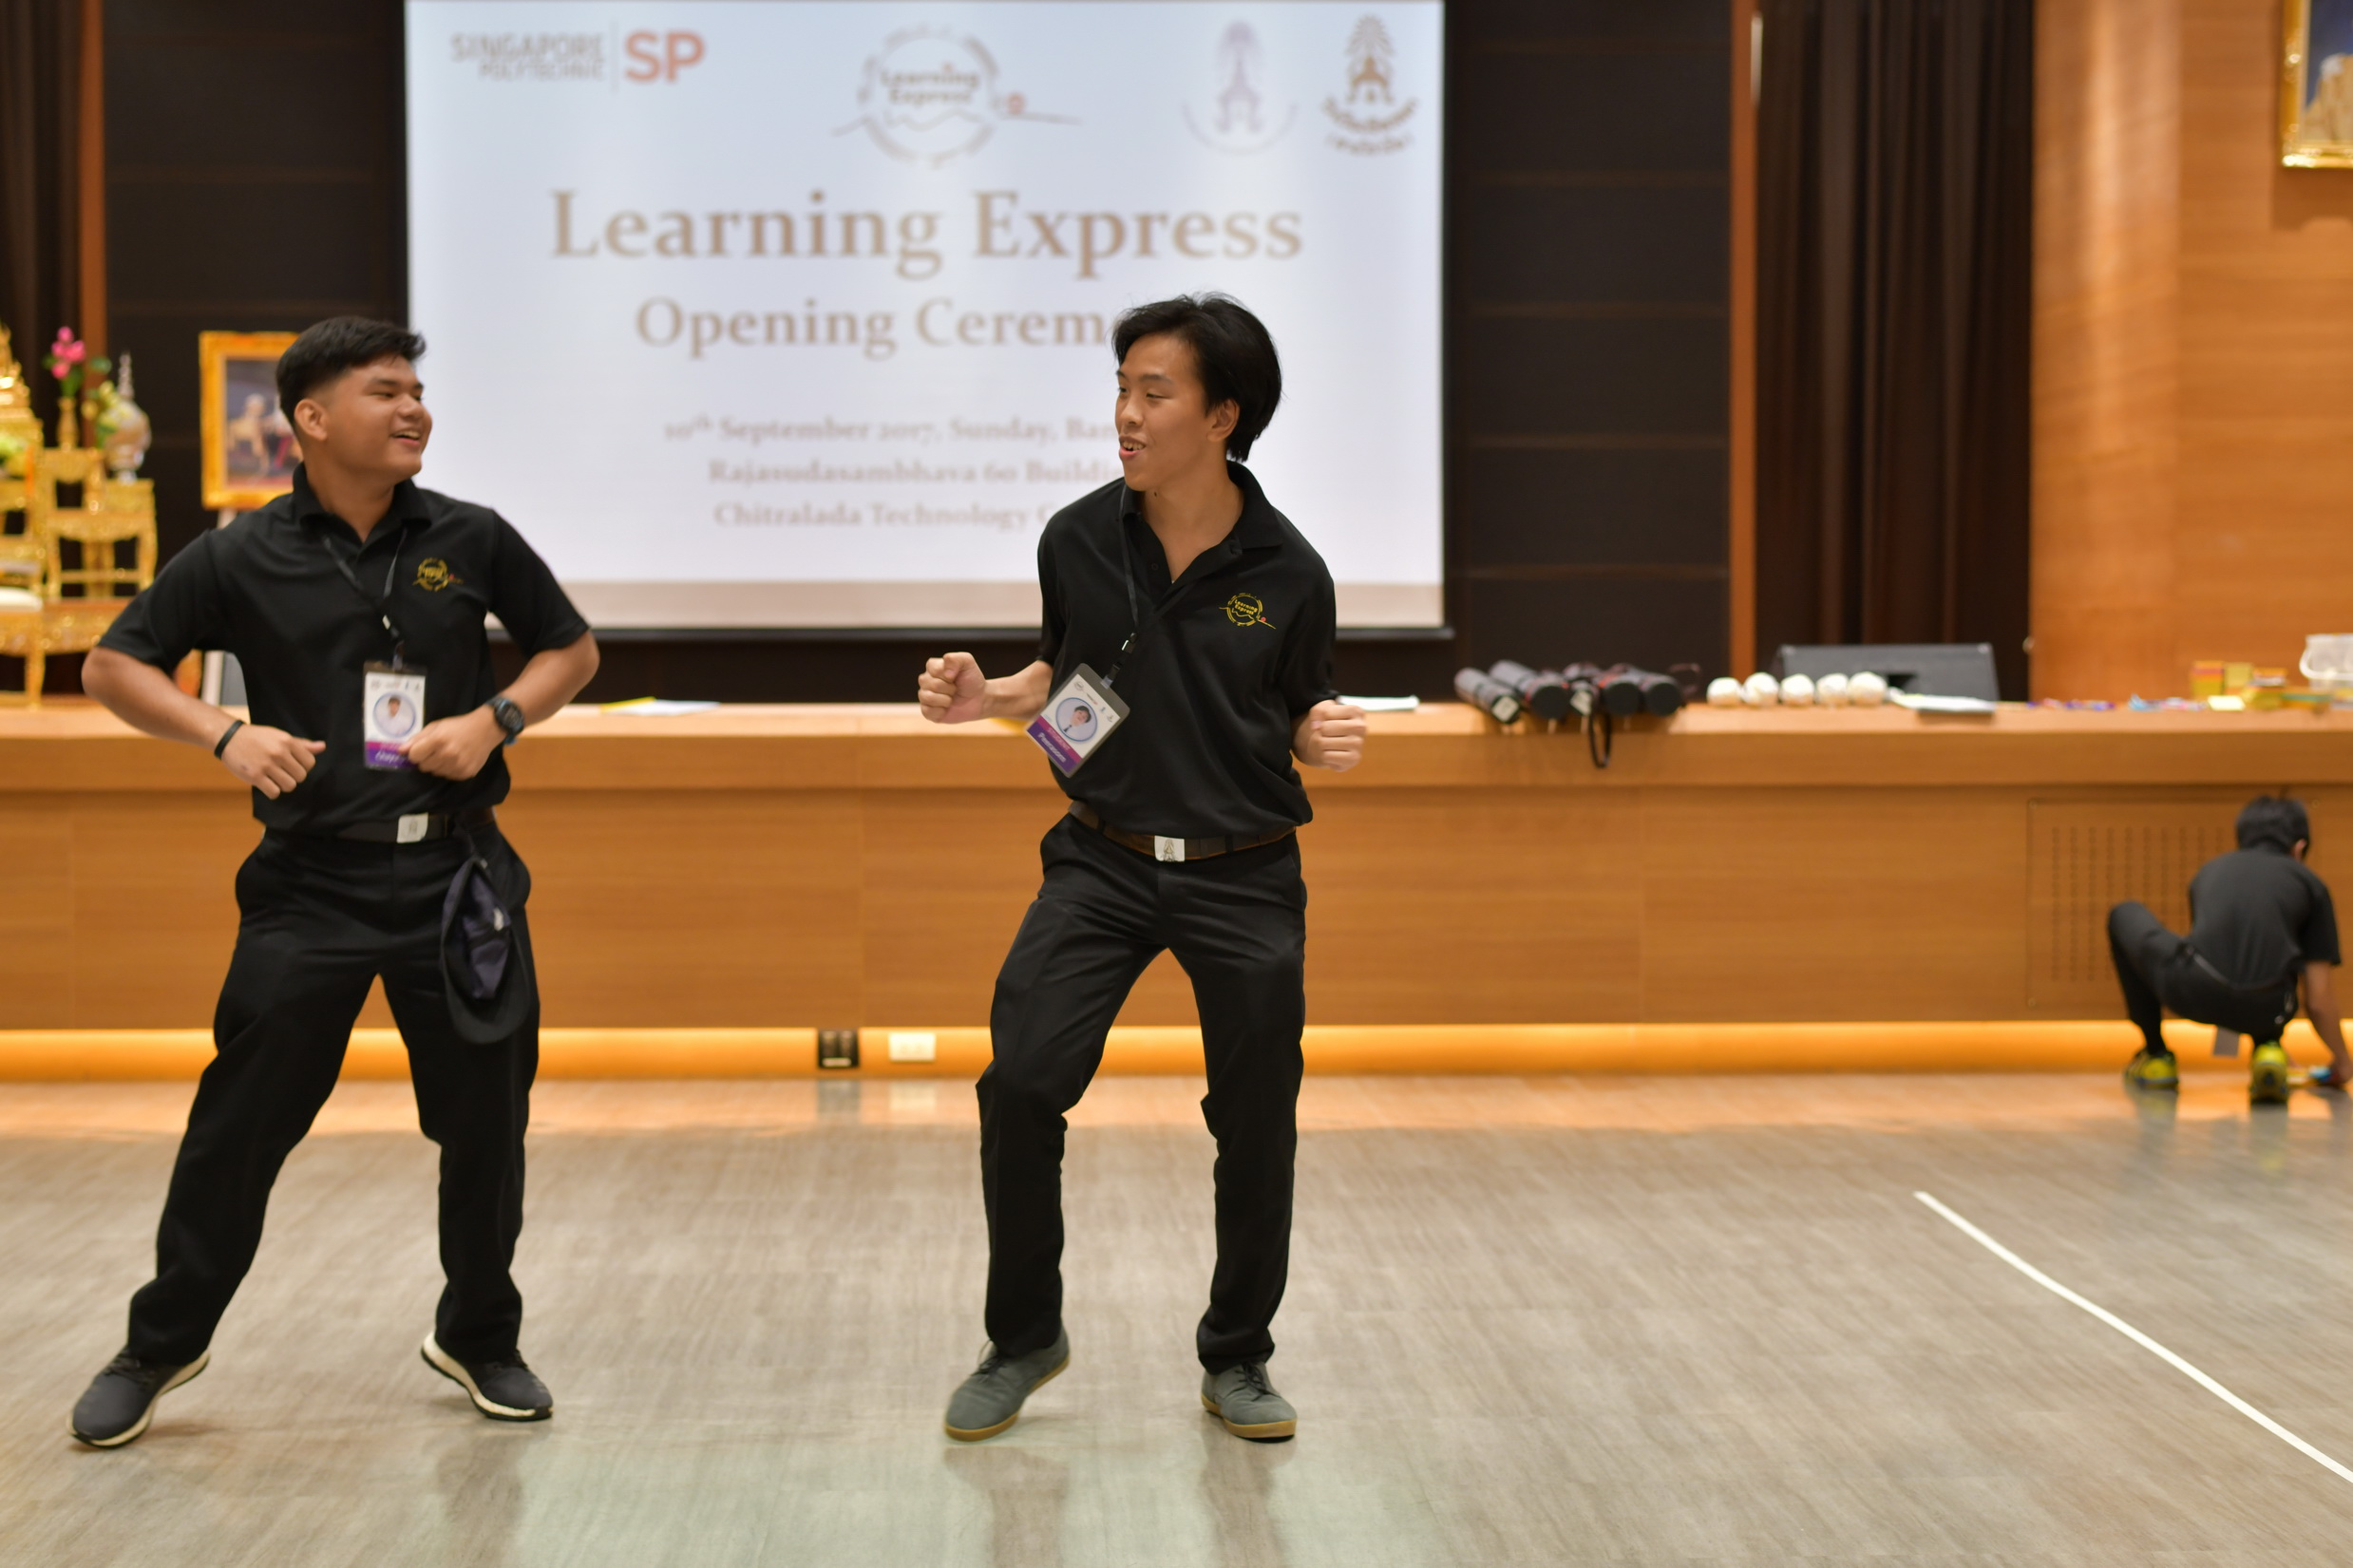 Learning Express 2017